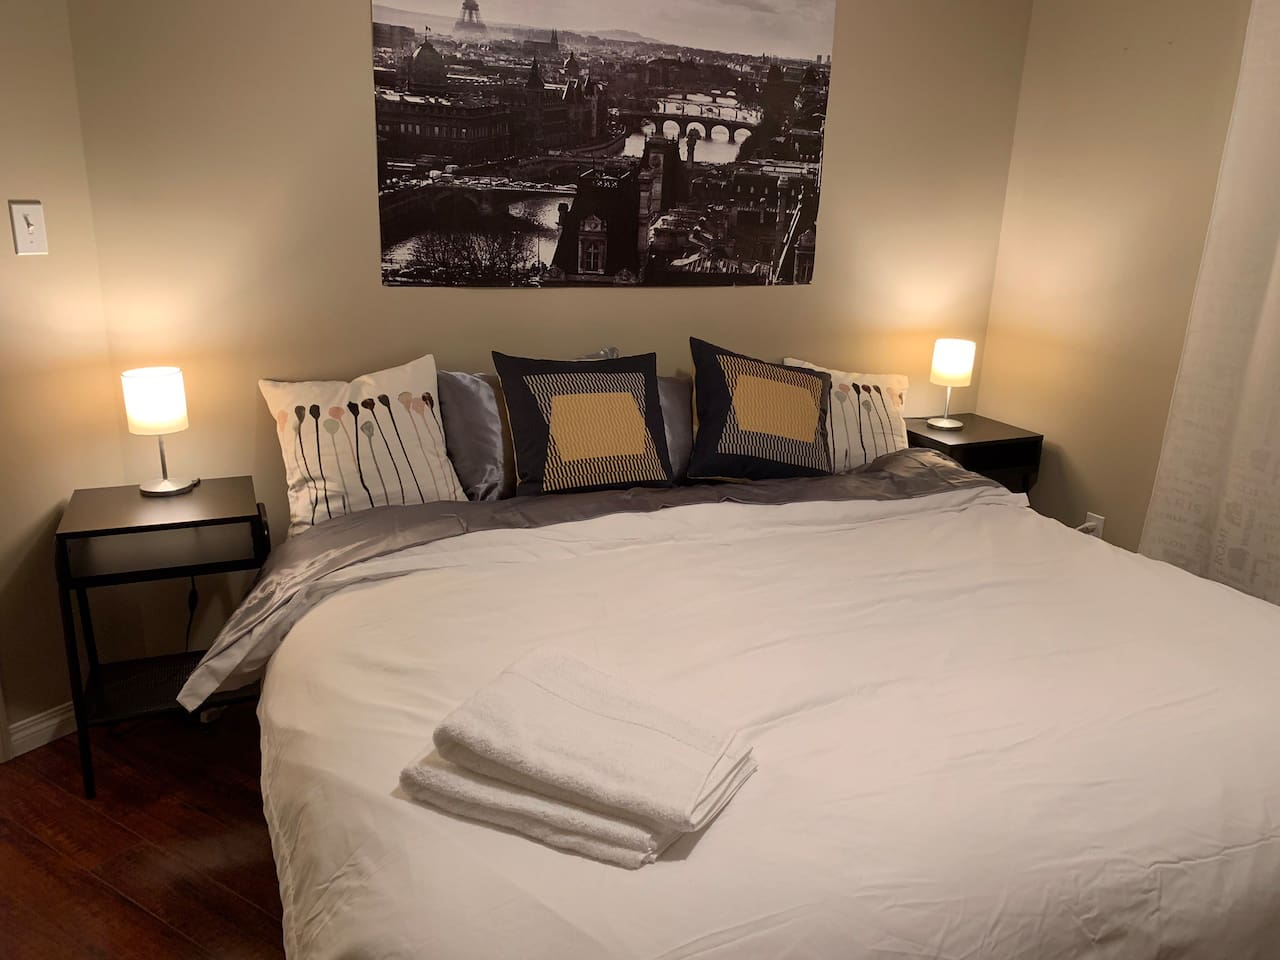 King Master bedroom, with a full length closet, and an AC system. We've added some night tables and pot lights recently for your comfort.